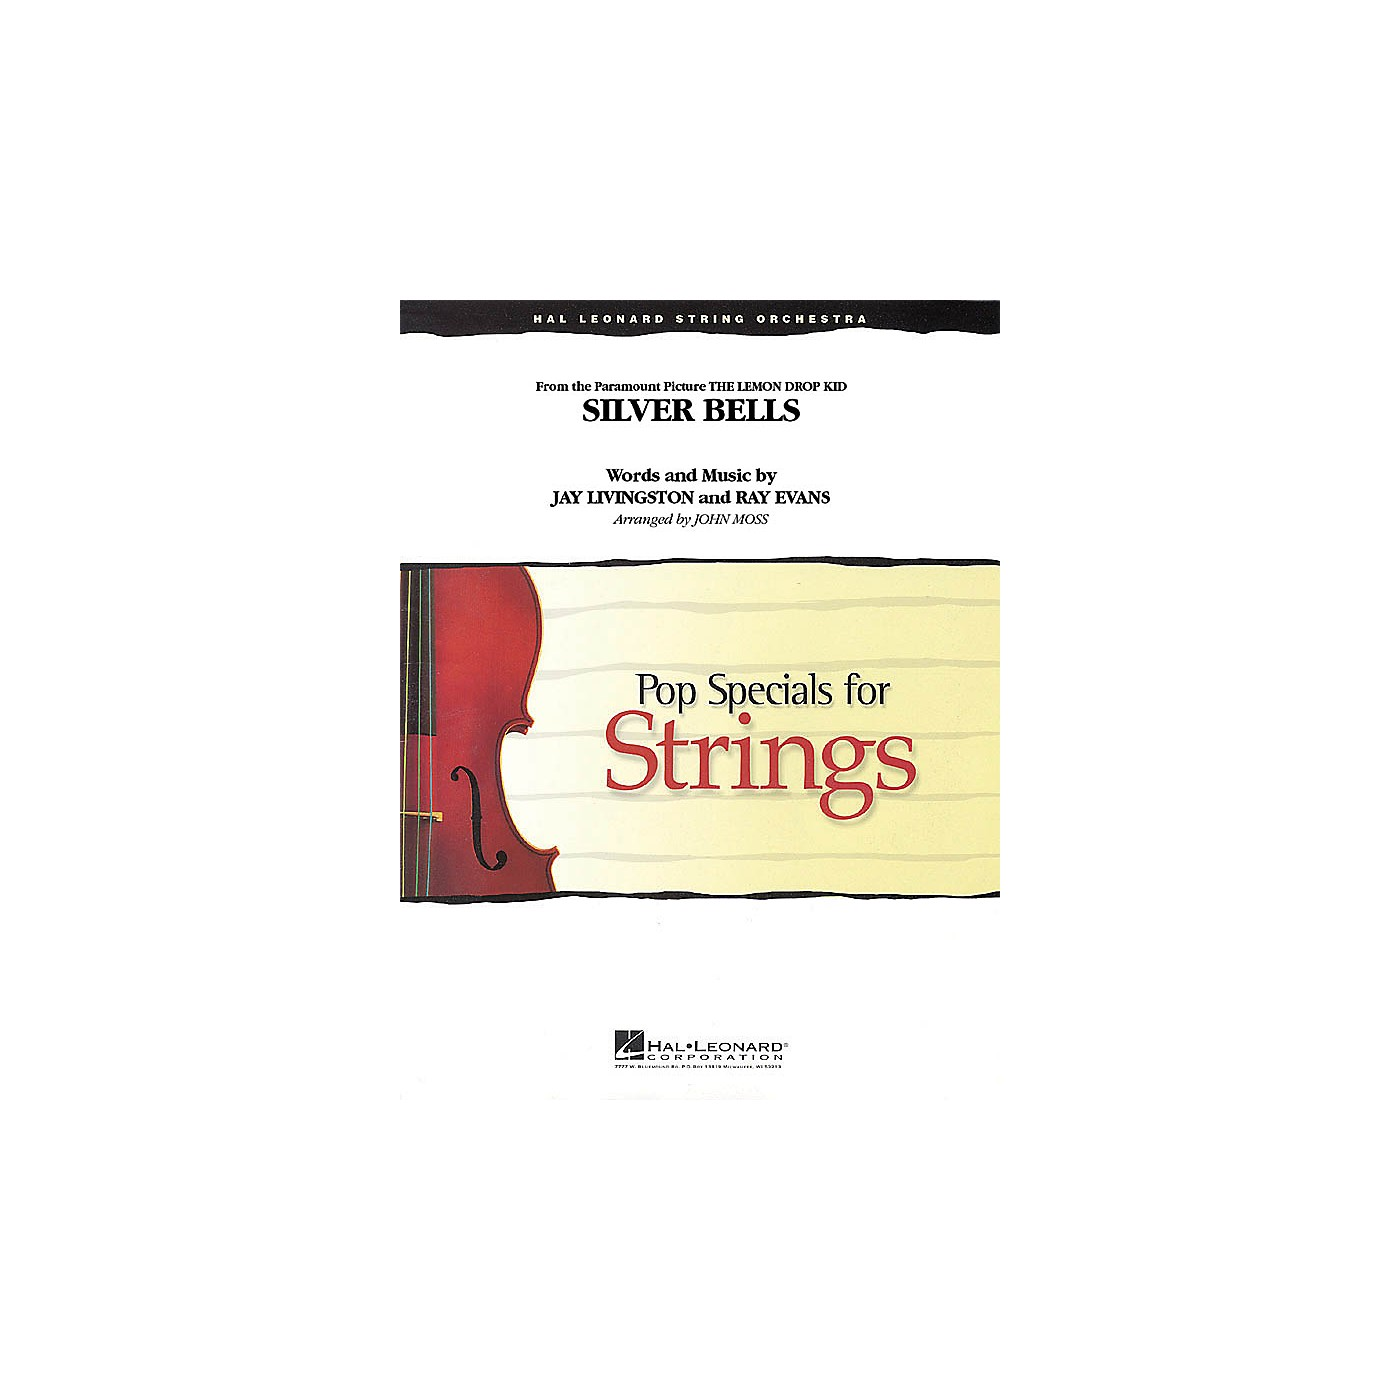 Hal Leonard Silver Bells (from The Lemon Drop Kid) Pop Specials for Strings Series Arranged by John Moss thumbnail